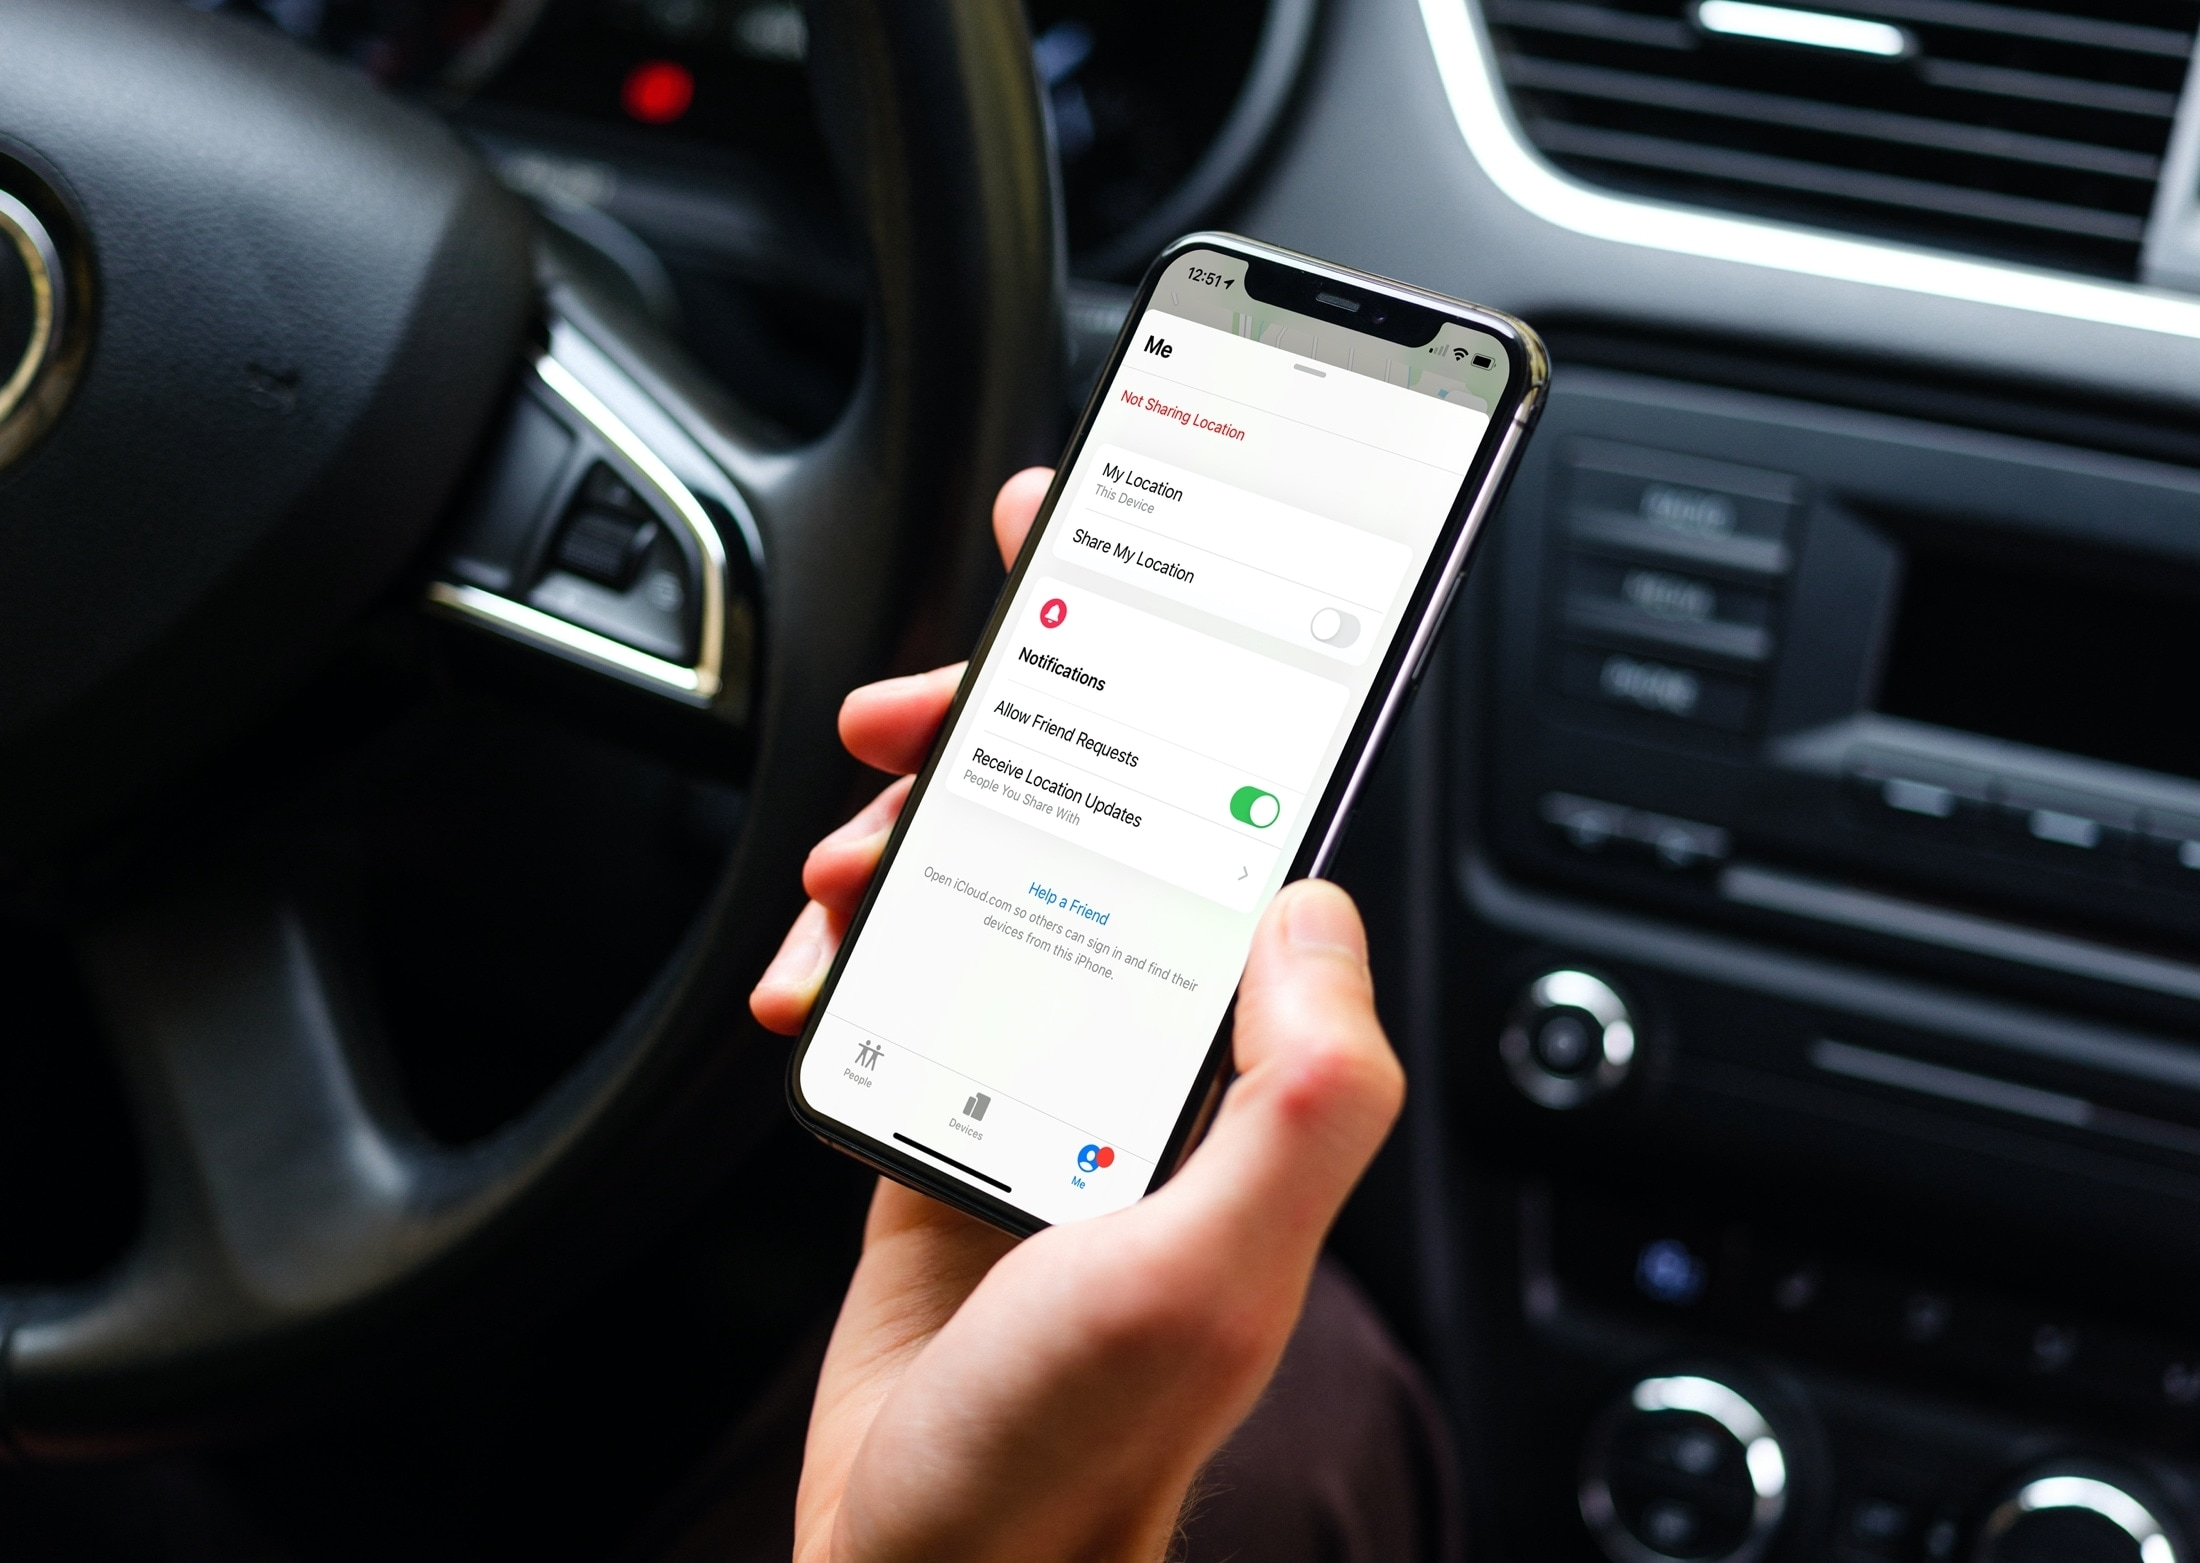 Disable Location Sharing in Find My on iPhone in the Car